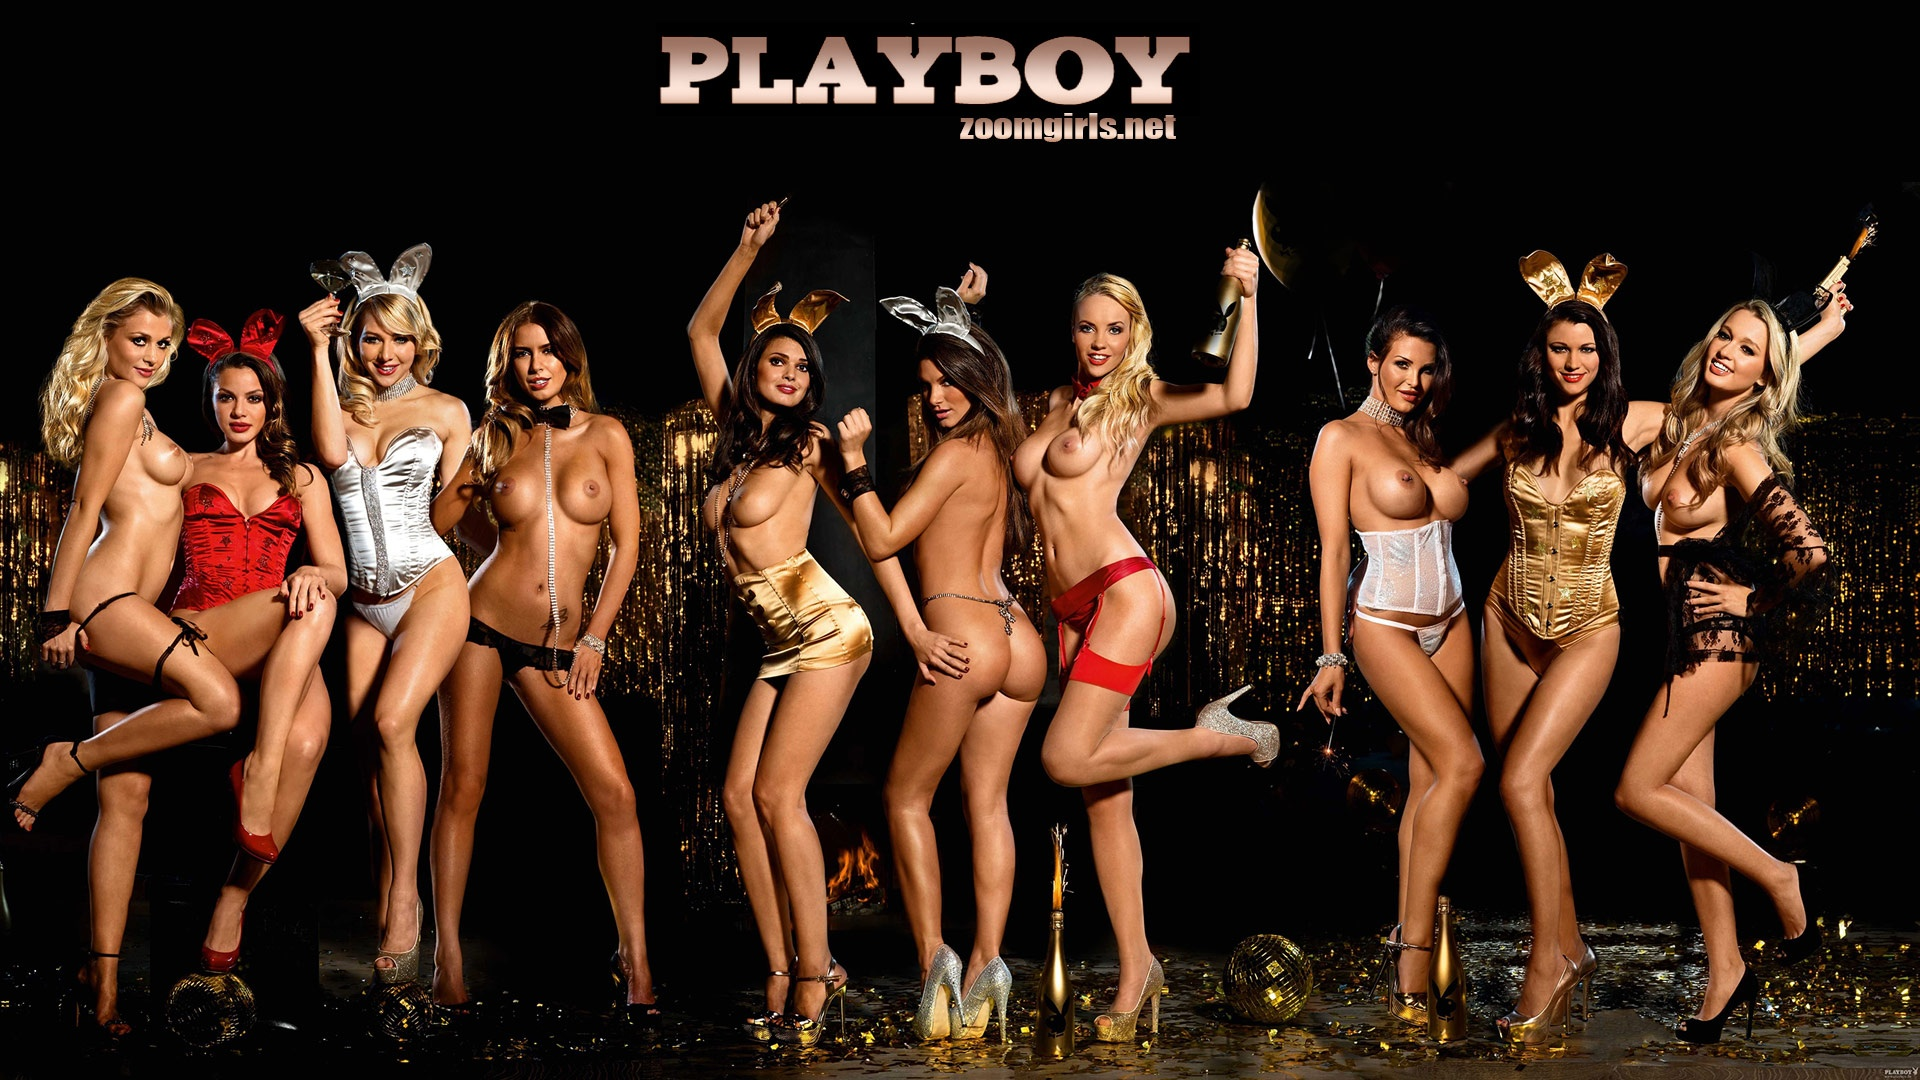 Playboy wallpapers naked scene